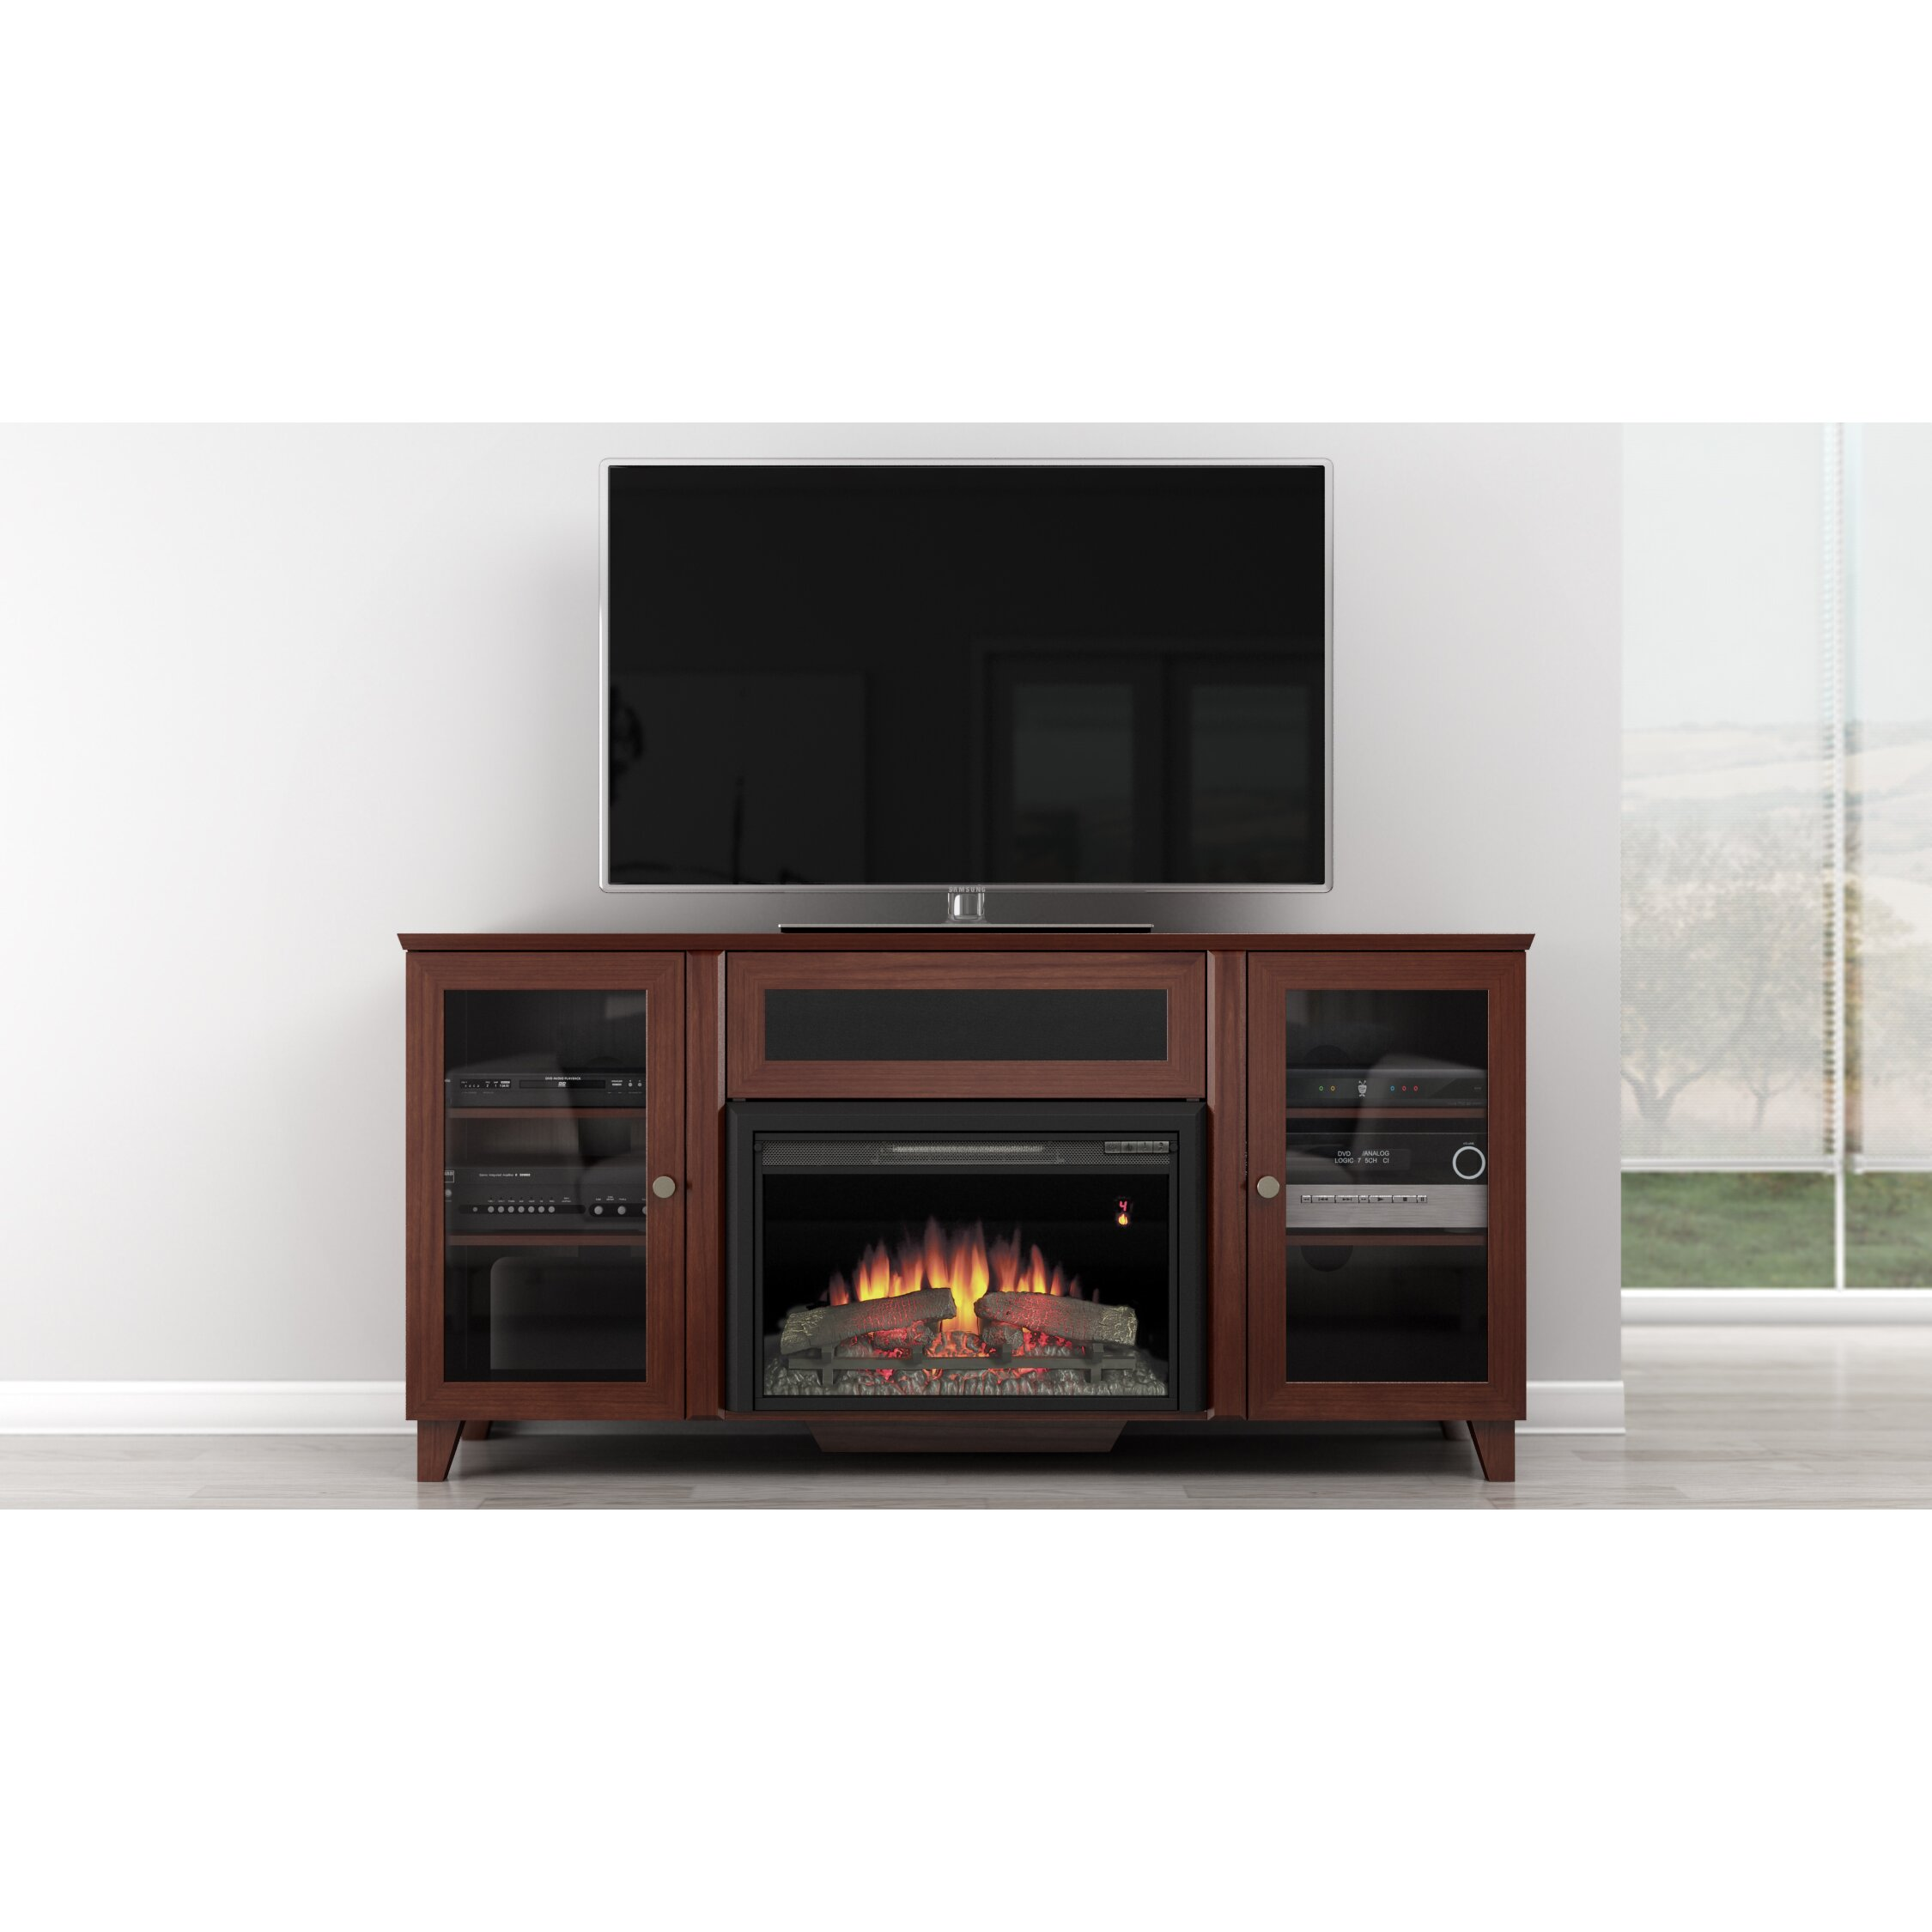 Furnitech Shaker Style TV Stand with Electric Fireplace & Reviews ...